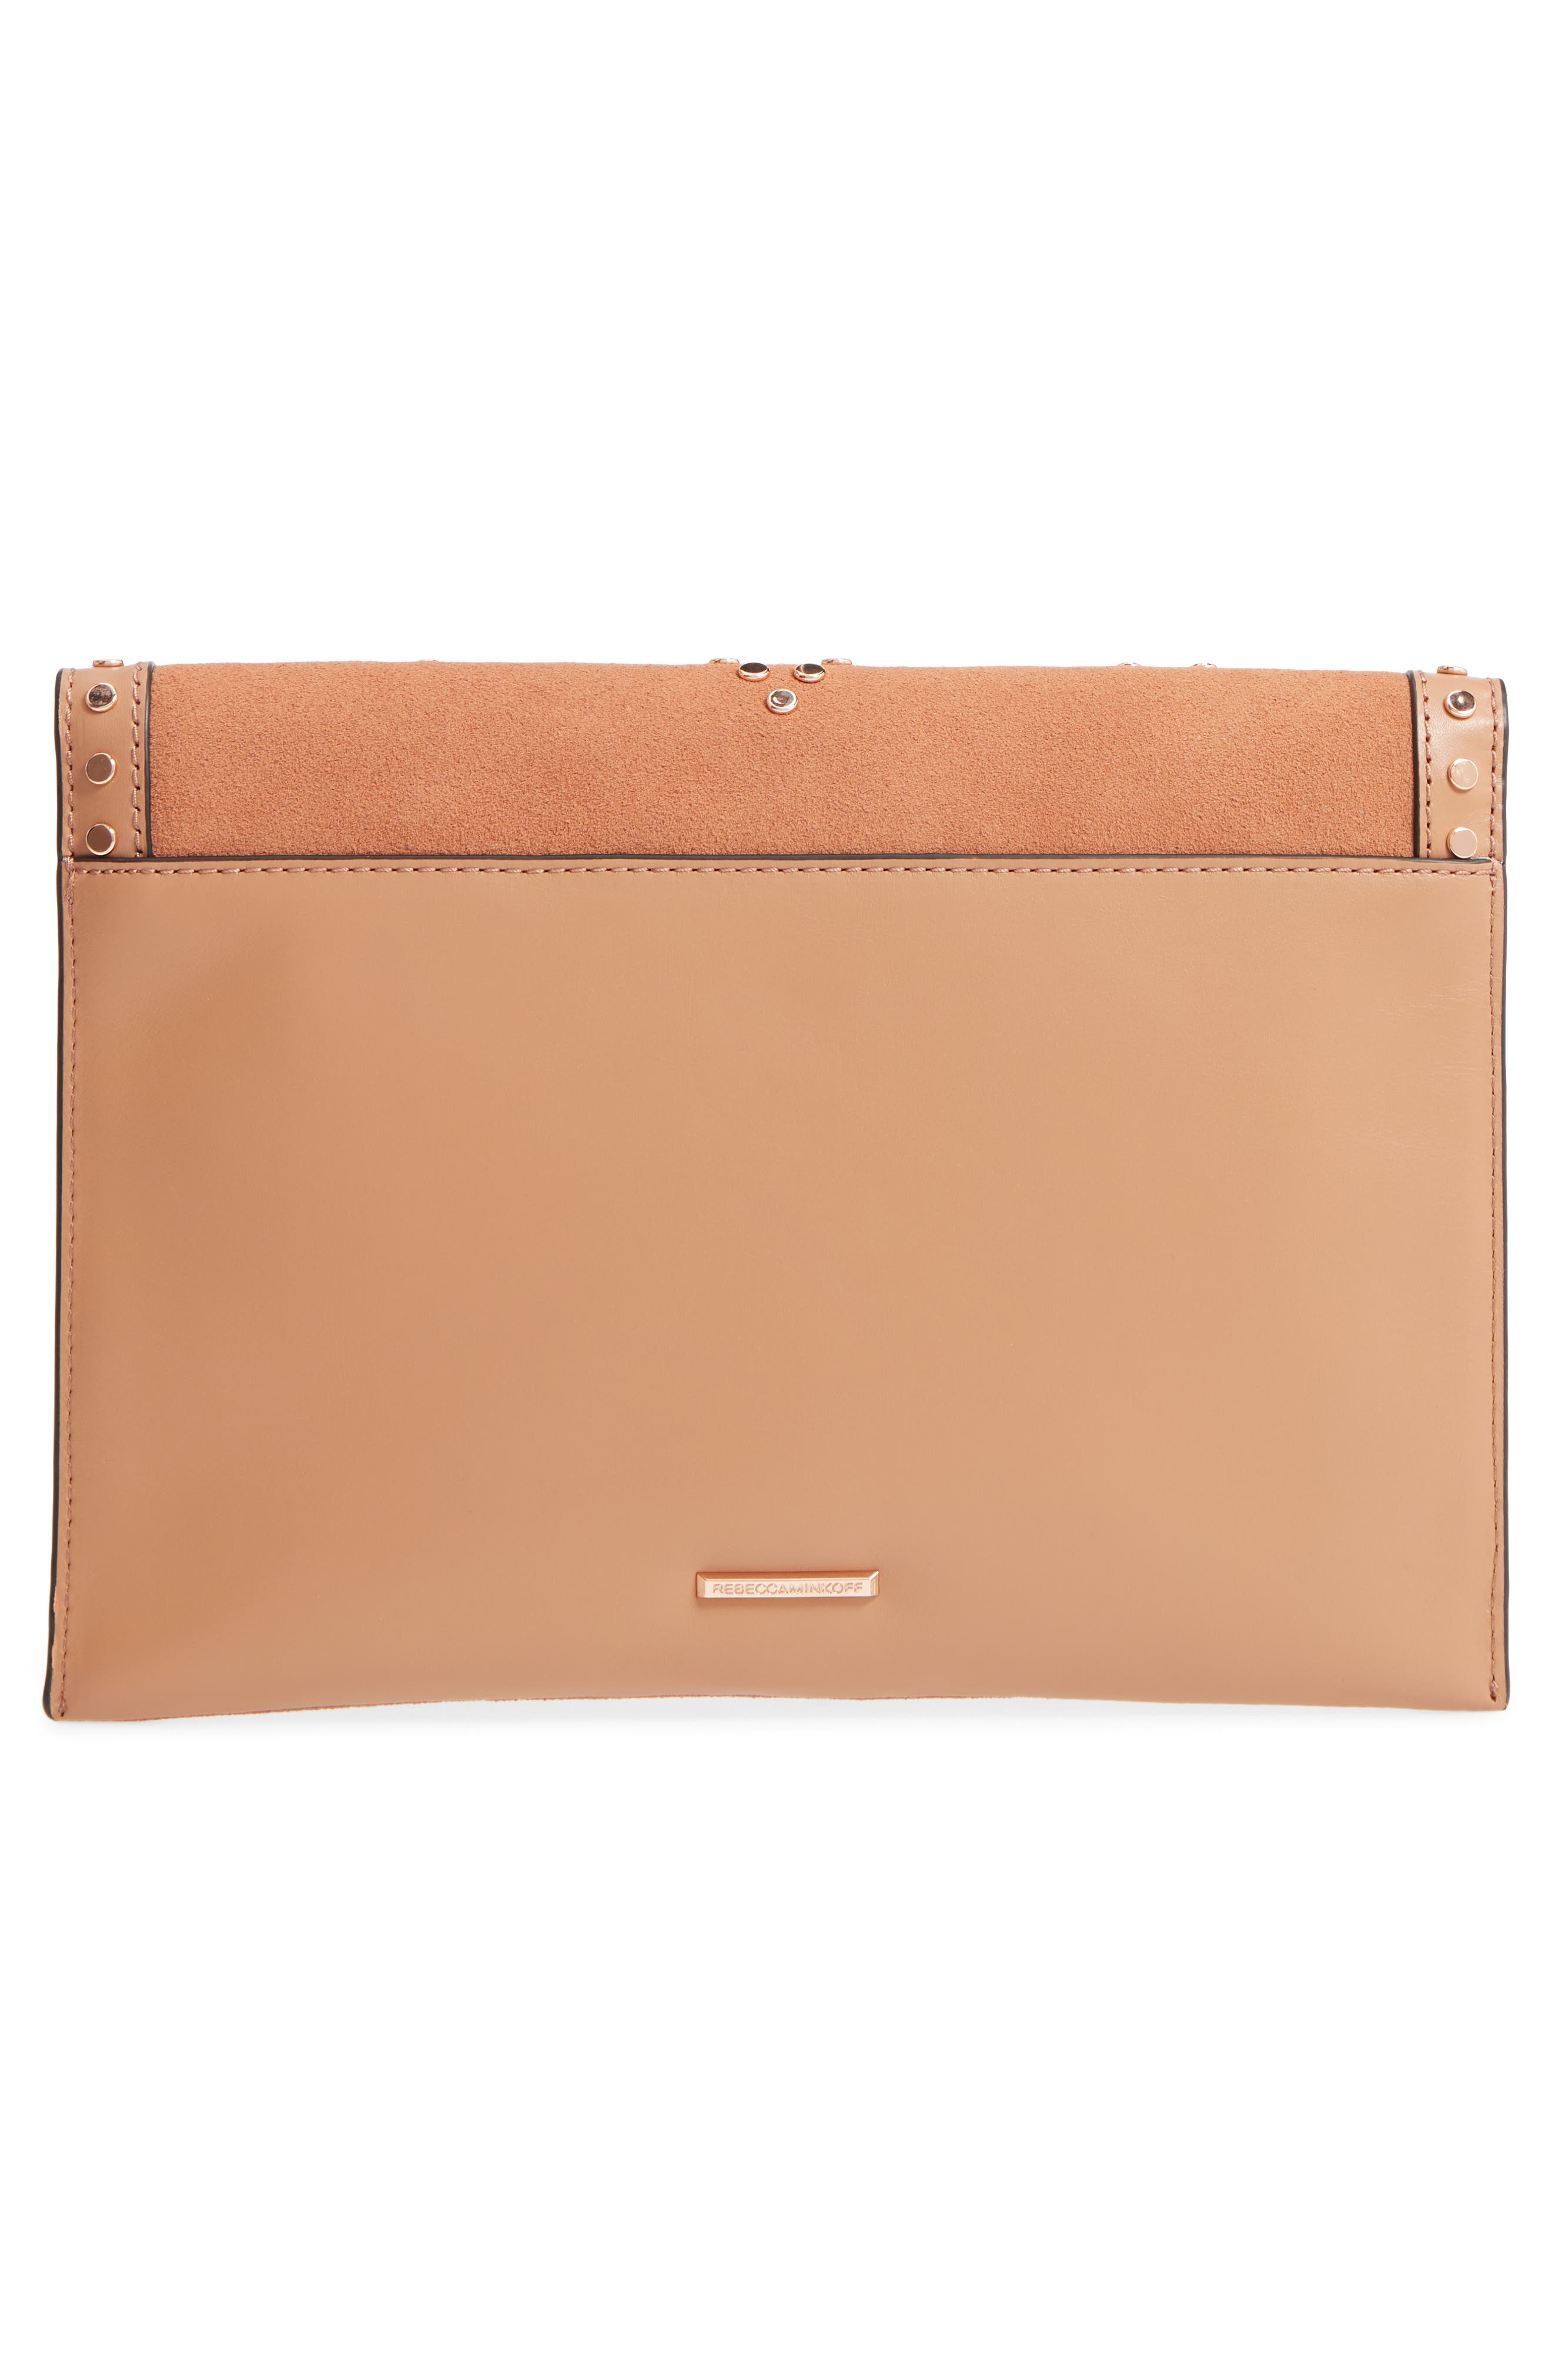 Leo Studded Leather & Suede Clutch,                             Alternate thumbnail 3, color,                             250